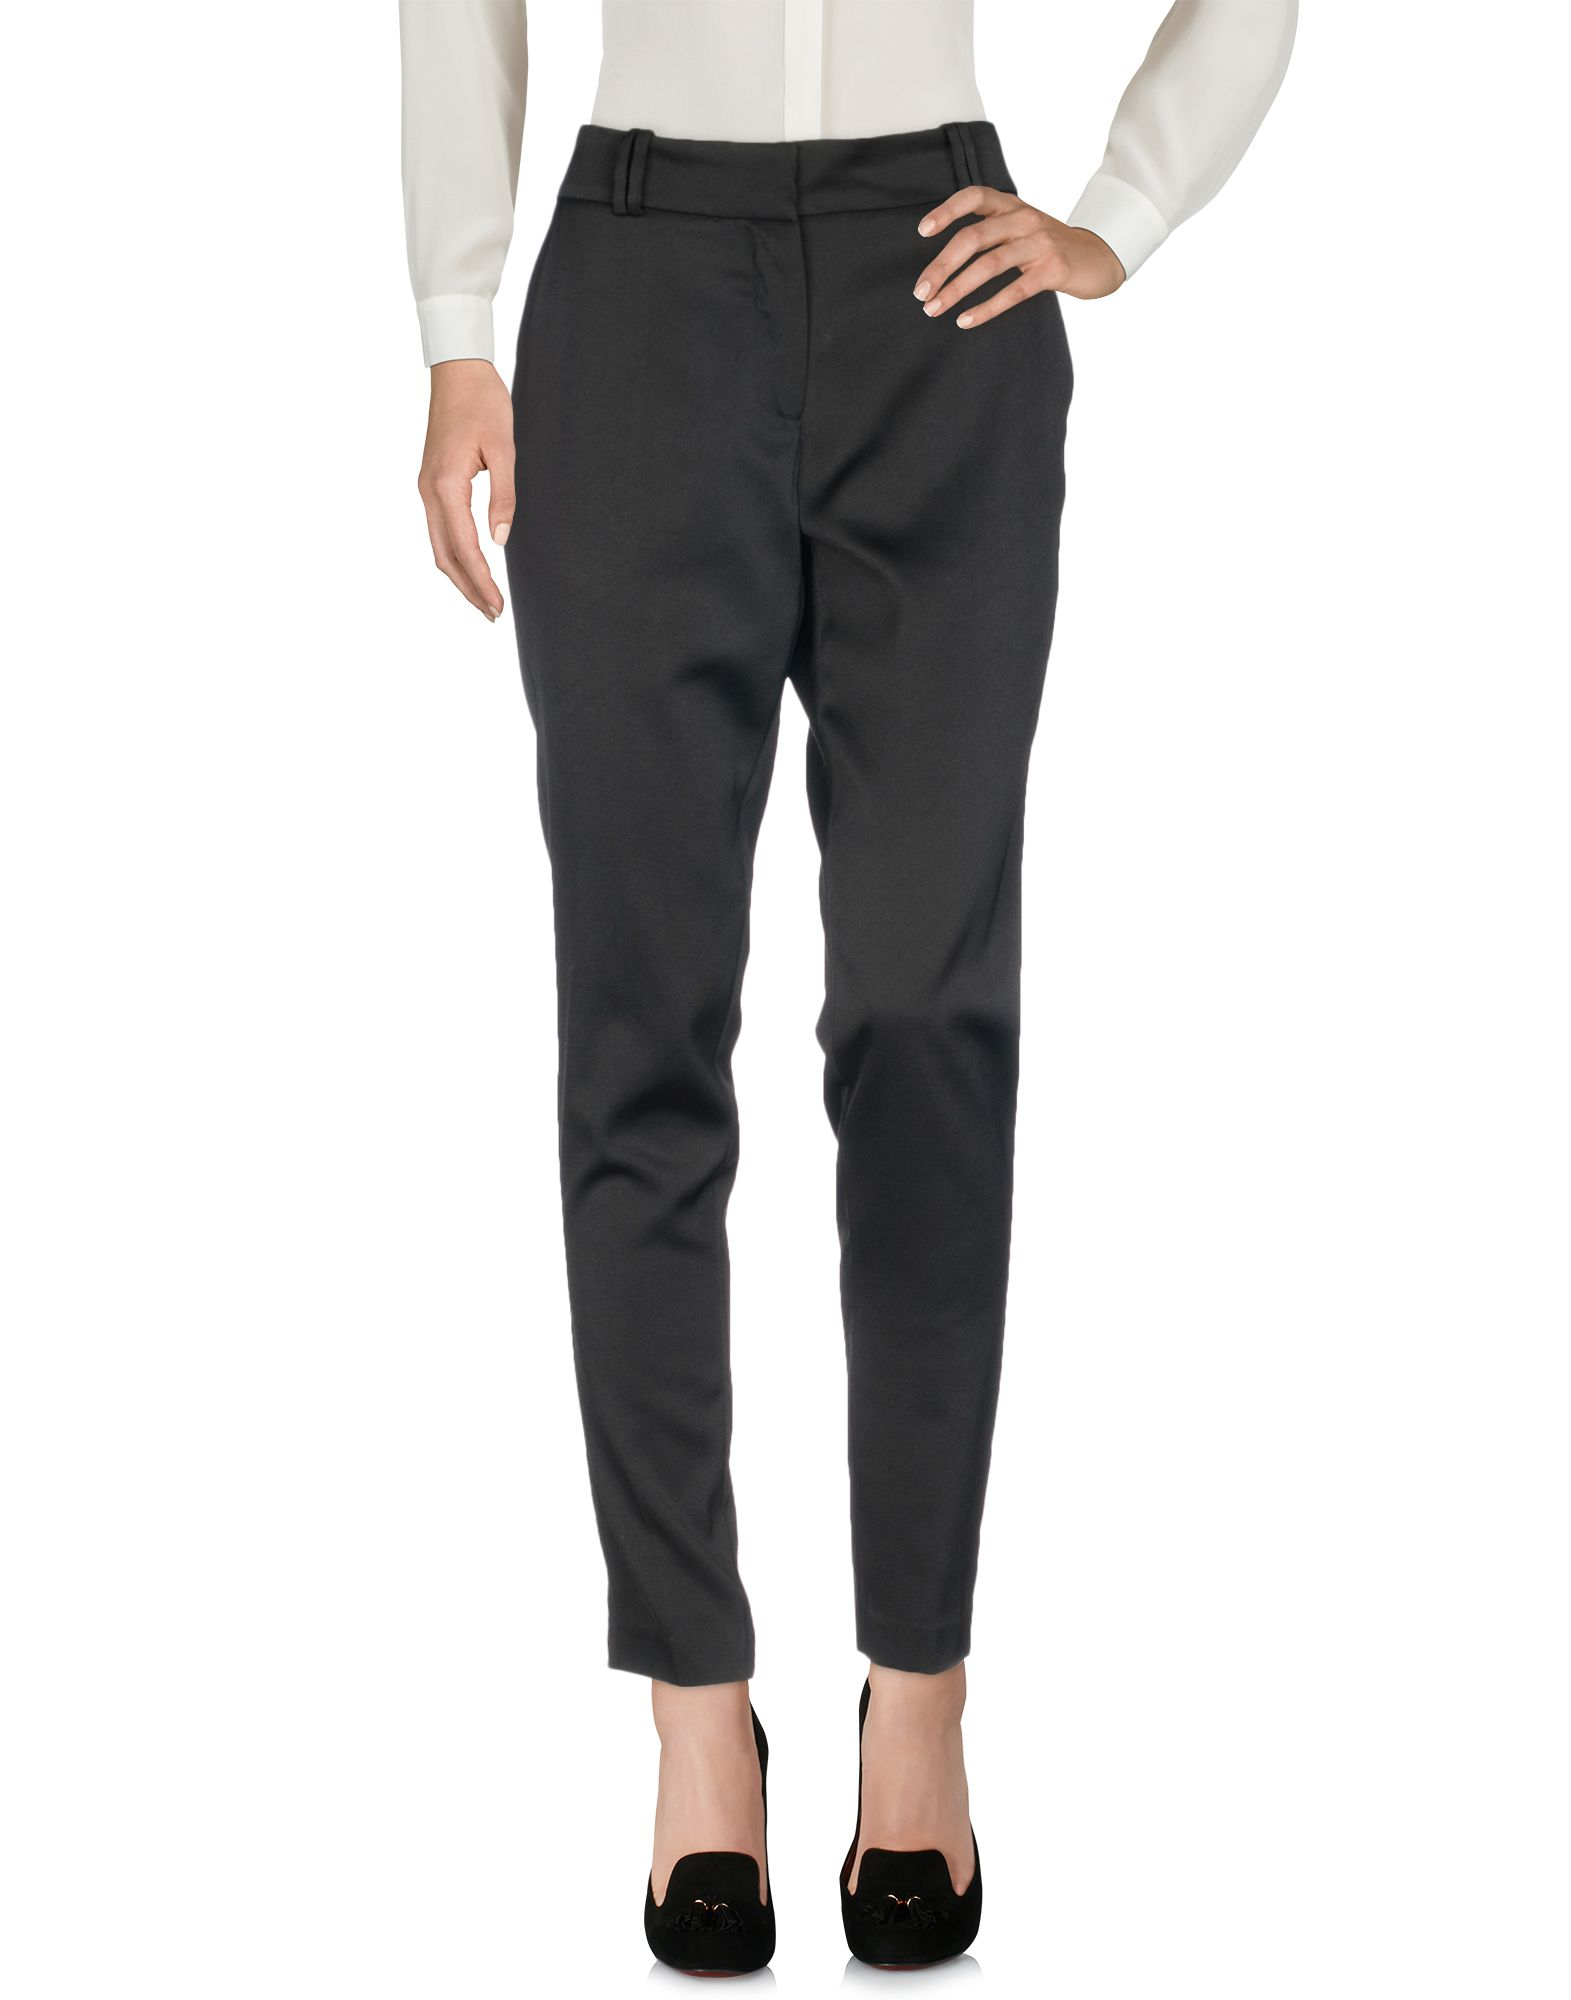 DAY BIRGER ET MIKKELSEN Casual Pants in Black